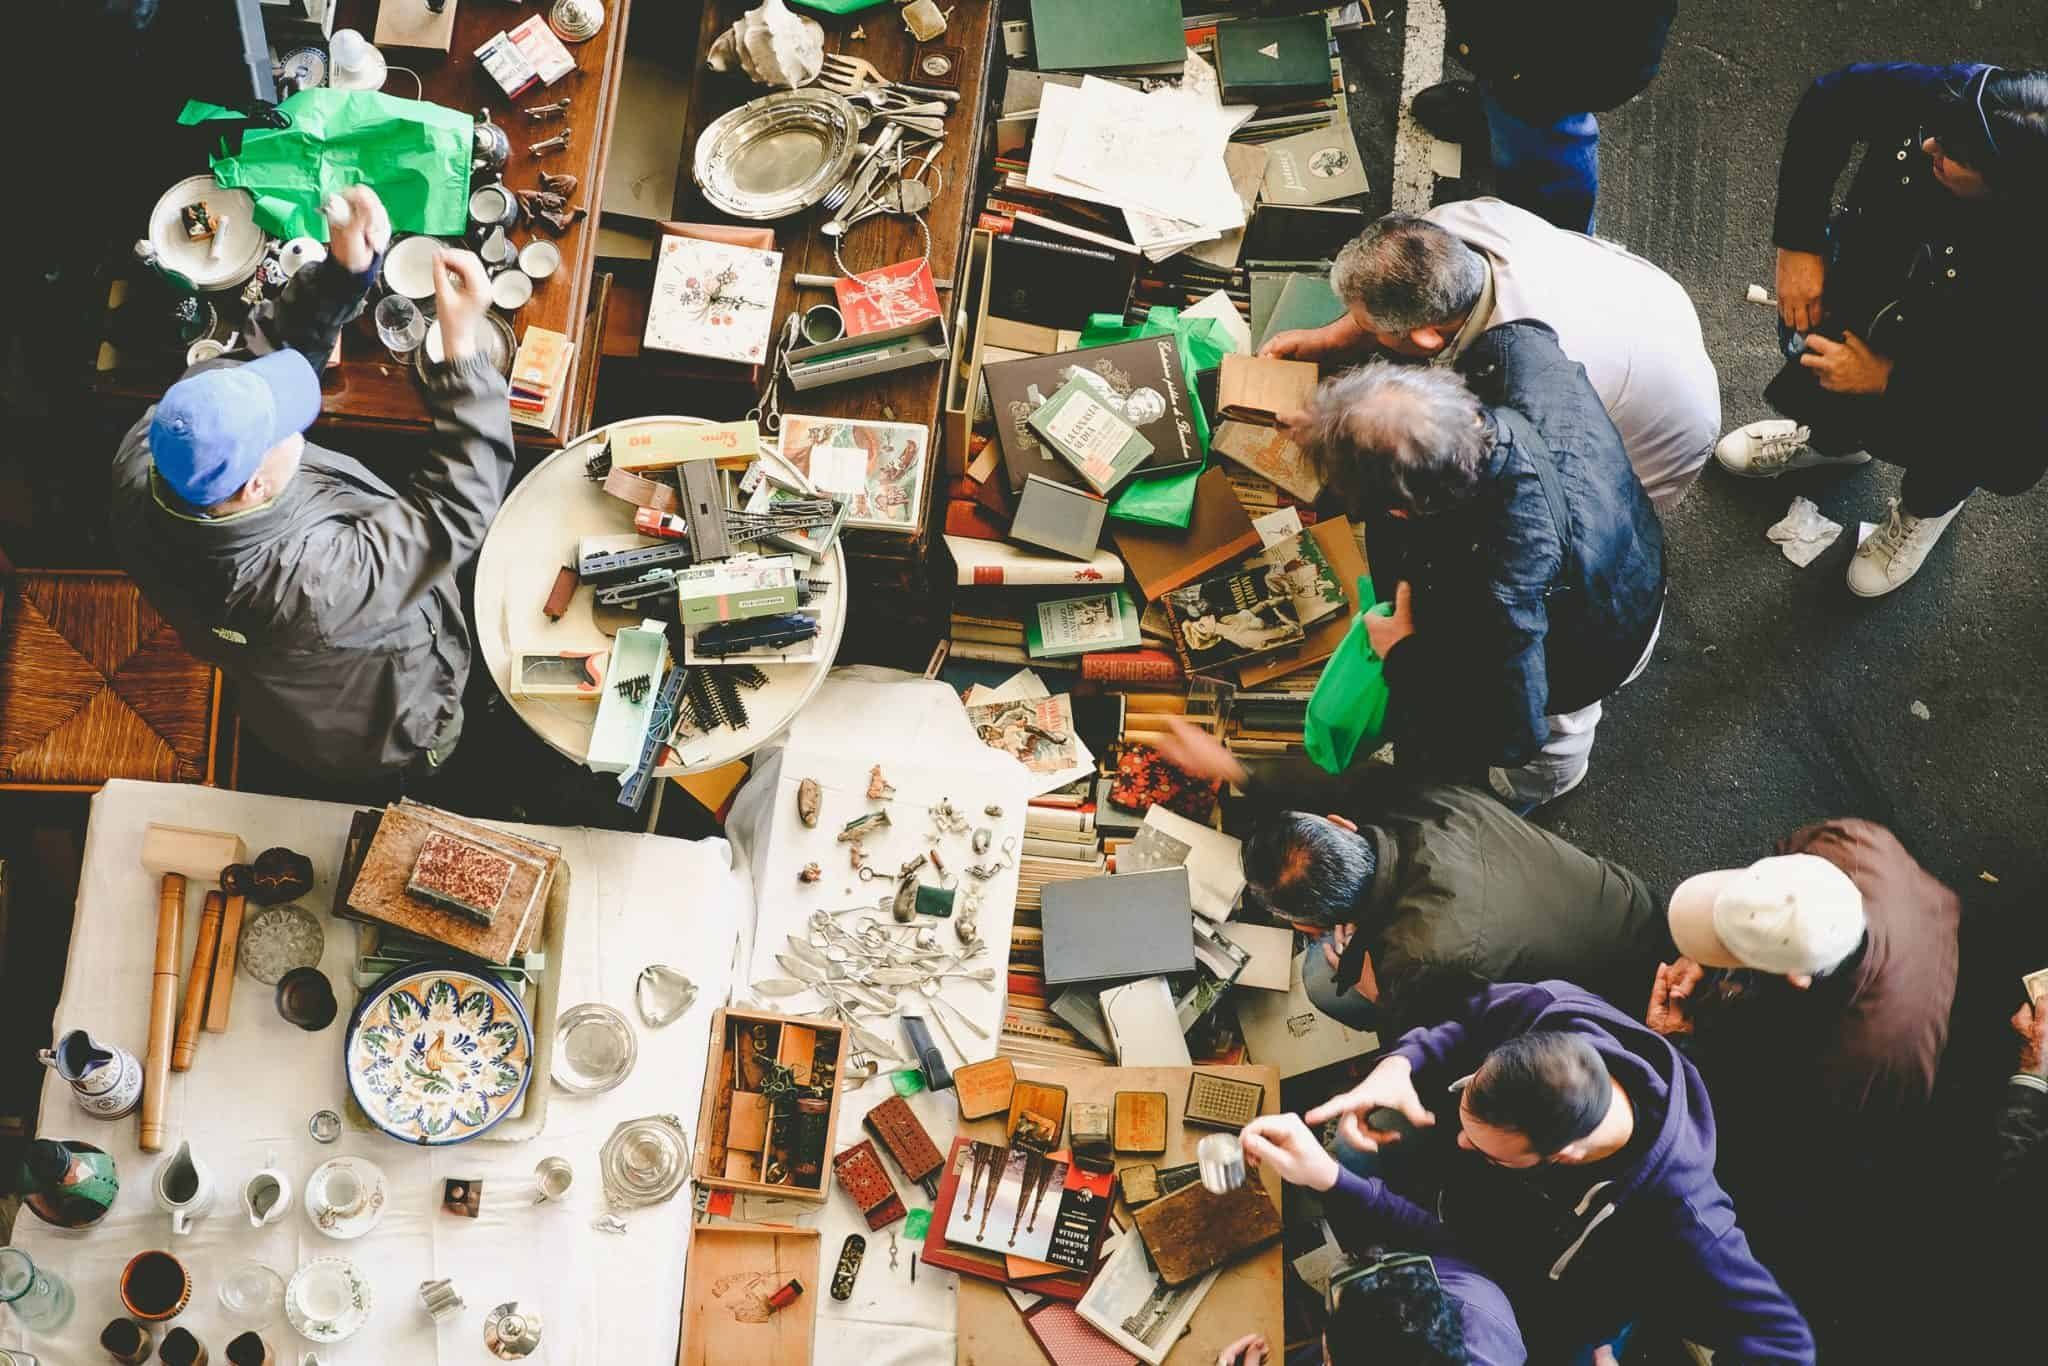 How to Get the Best Deals at Garage Sales - Shopping Garage Sales Tips